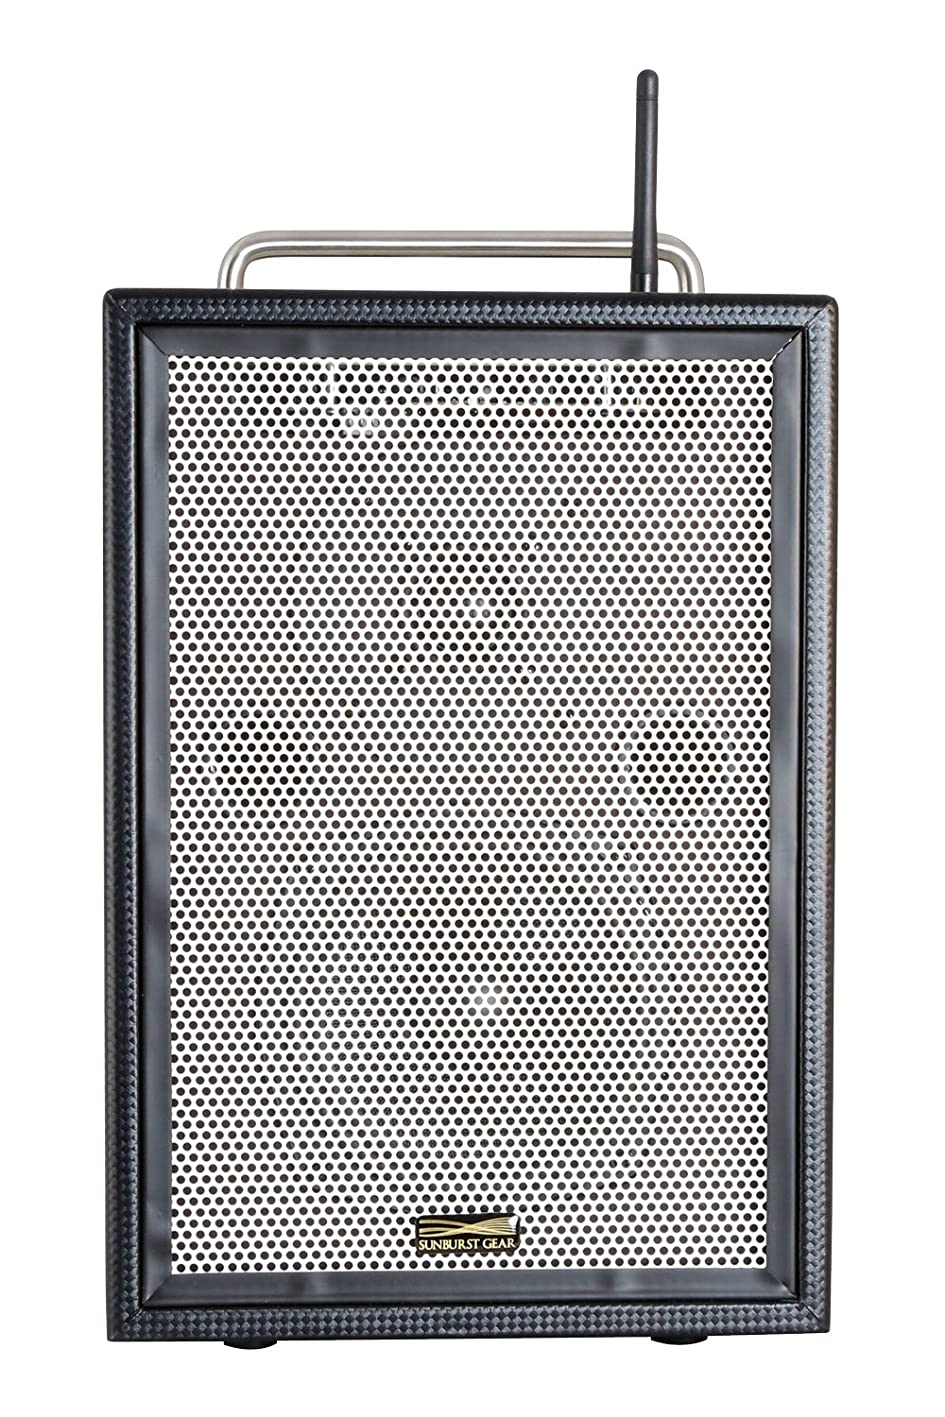 Sunburst Gear MM Series M3BR8 Portable All-in-One Rechargeable Battery Powered Monitor Speaker with Bluetooth ykivovfxigw519